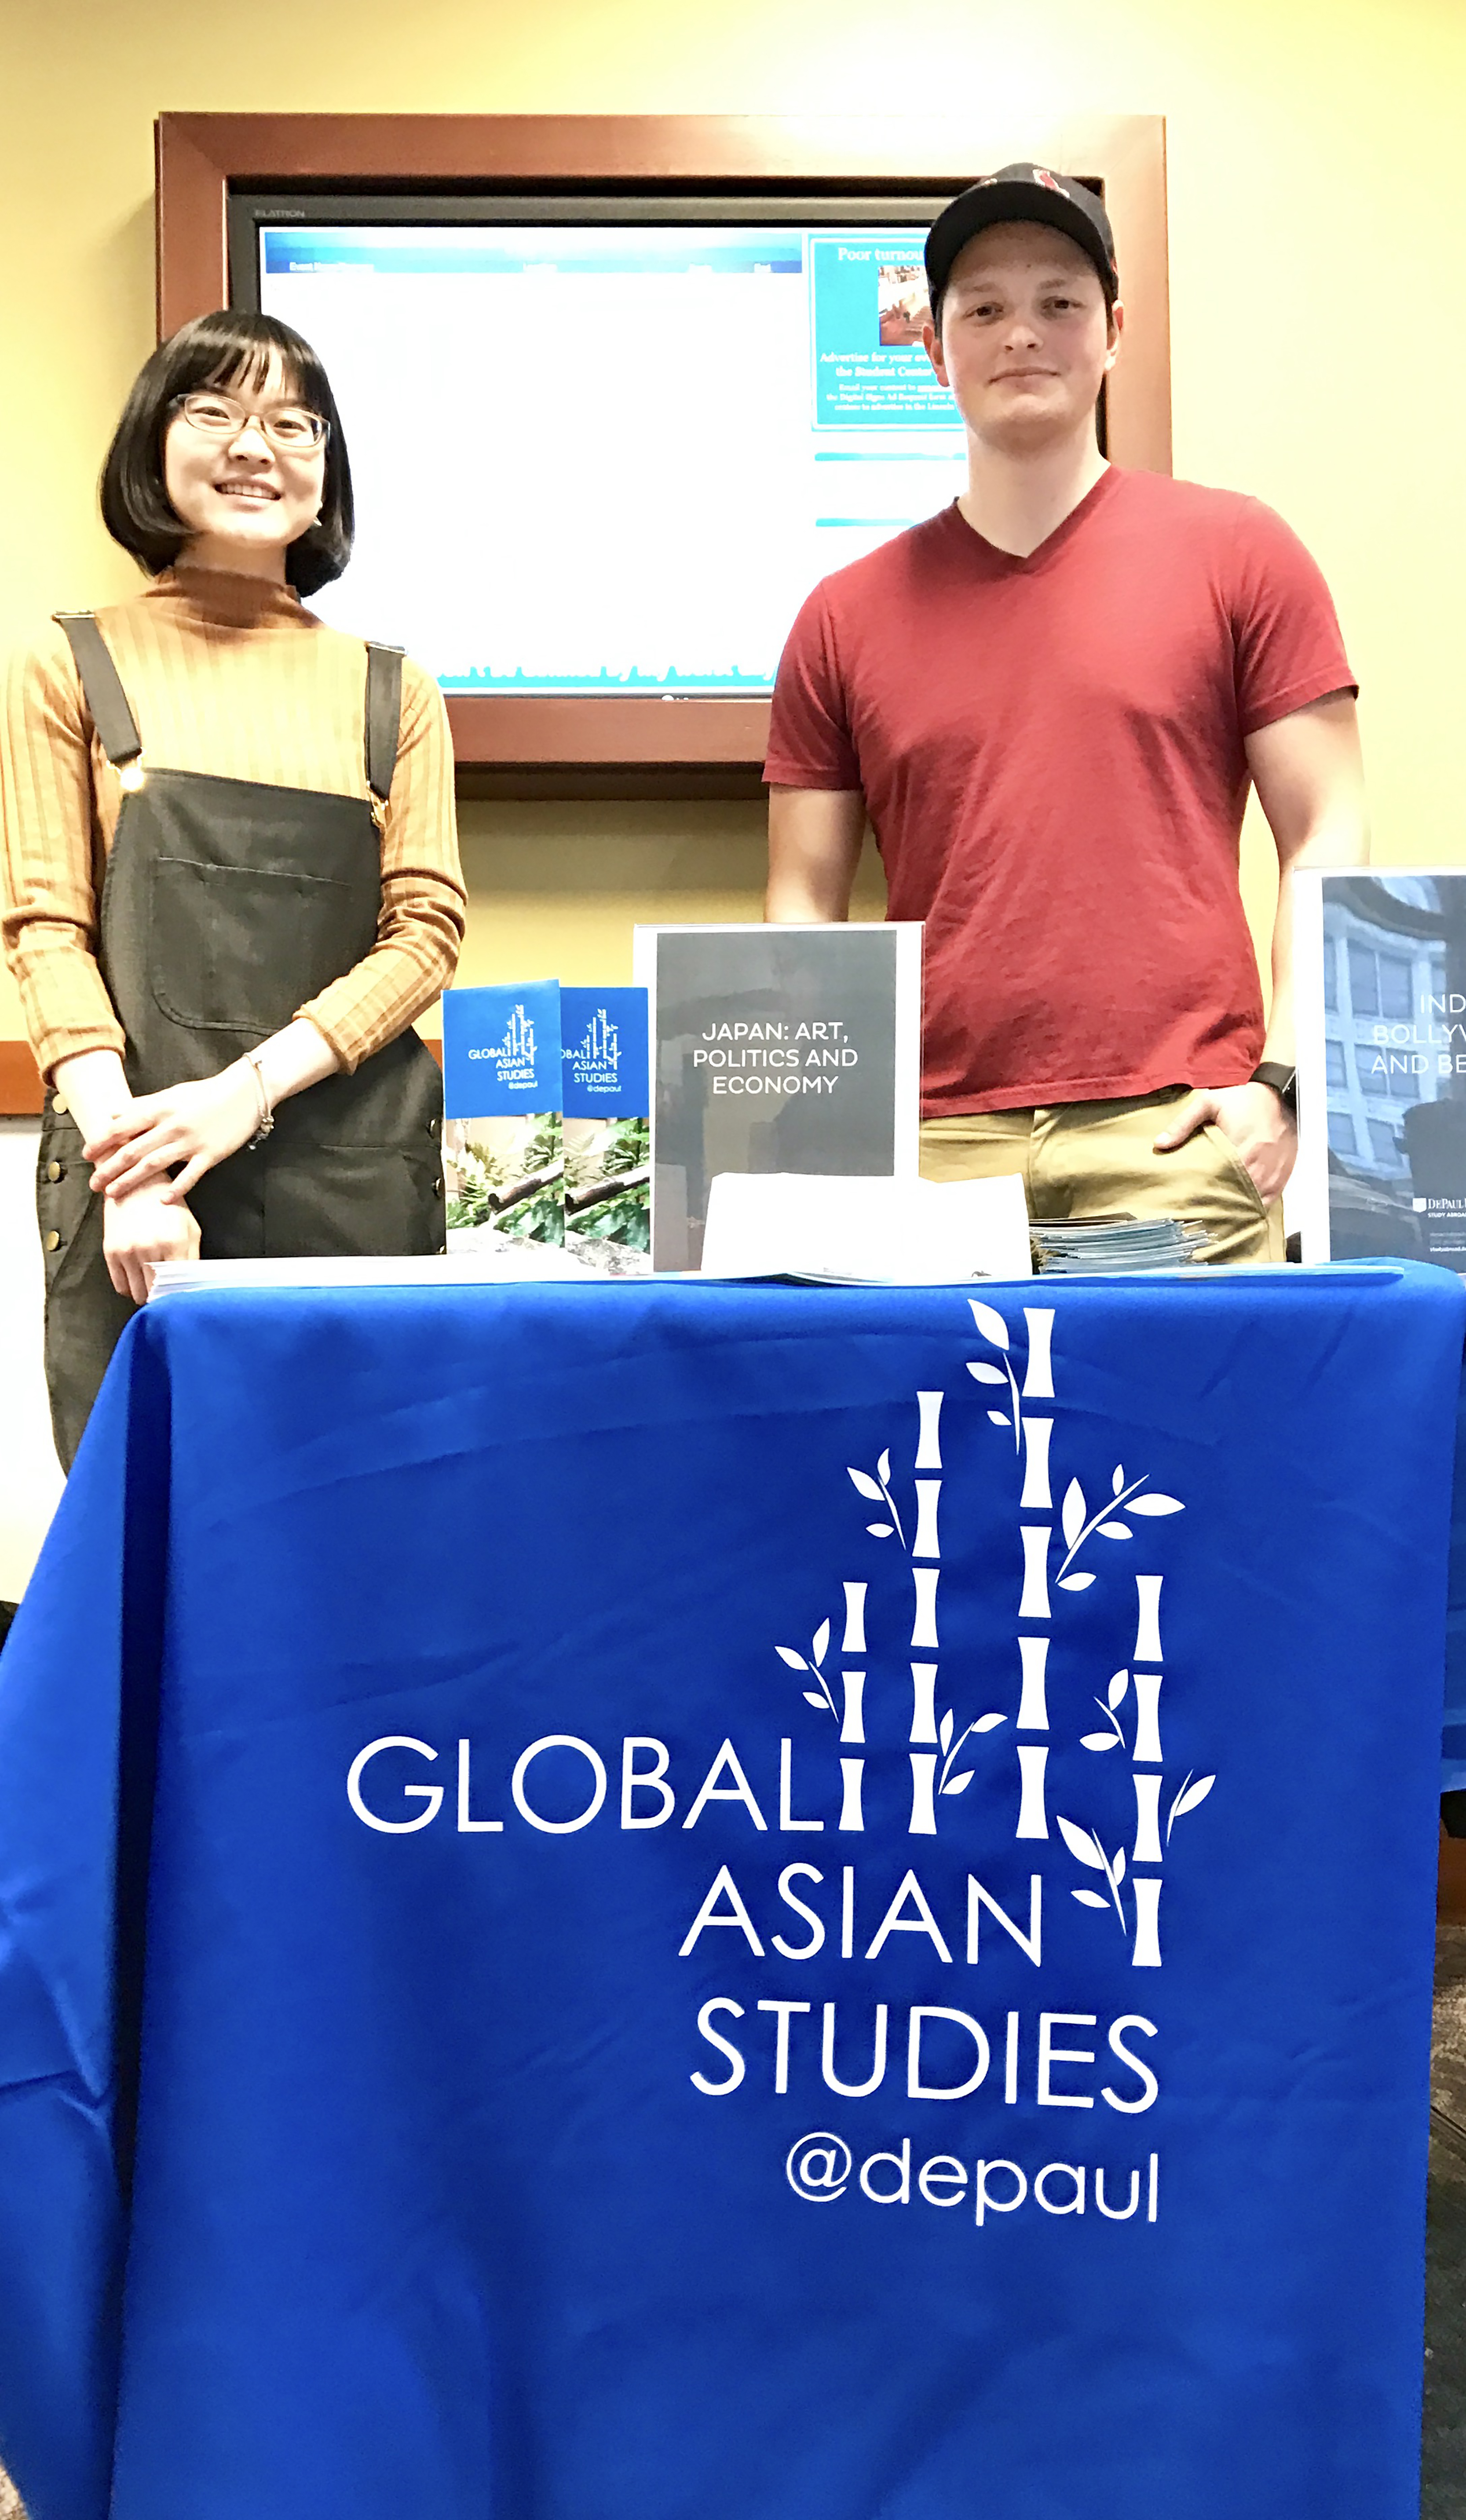 ​Global Asian Studies students promoting Okinawa, Japan Study Abroad